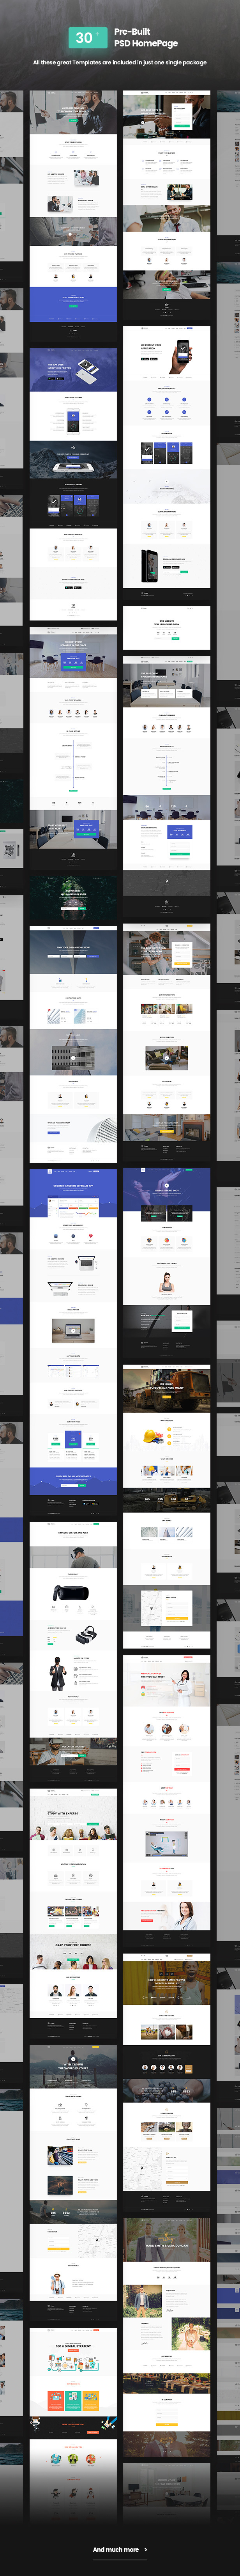 homepages